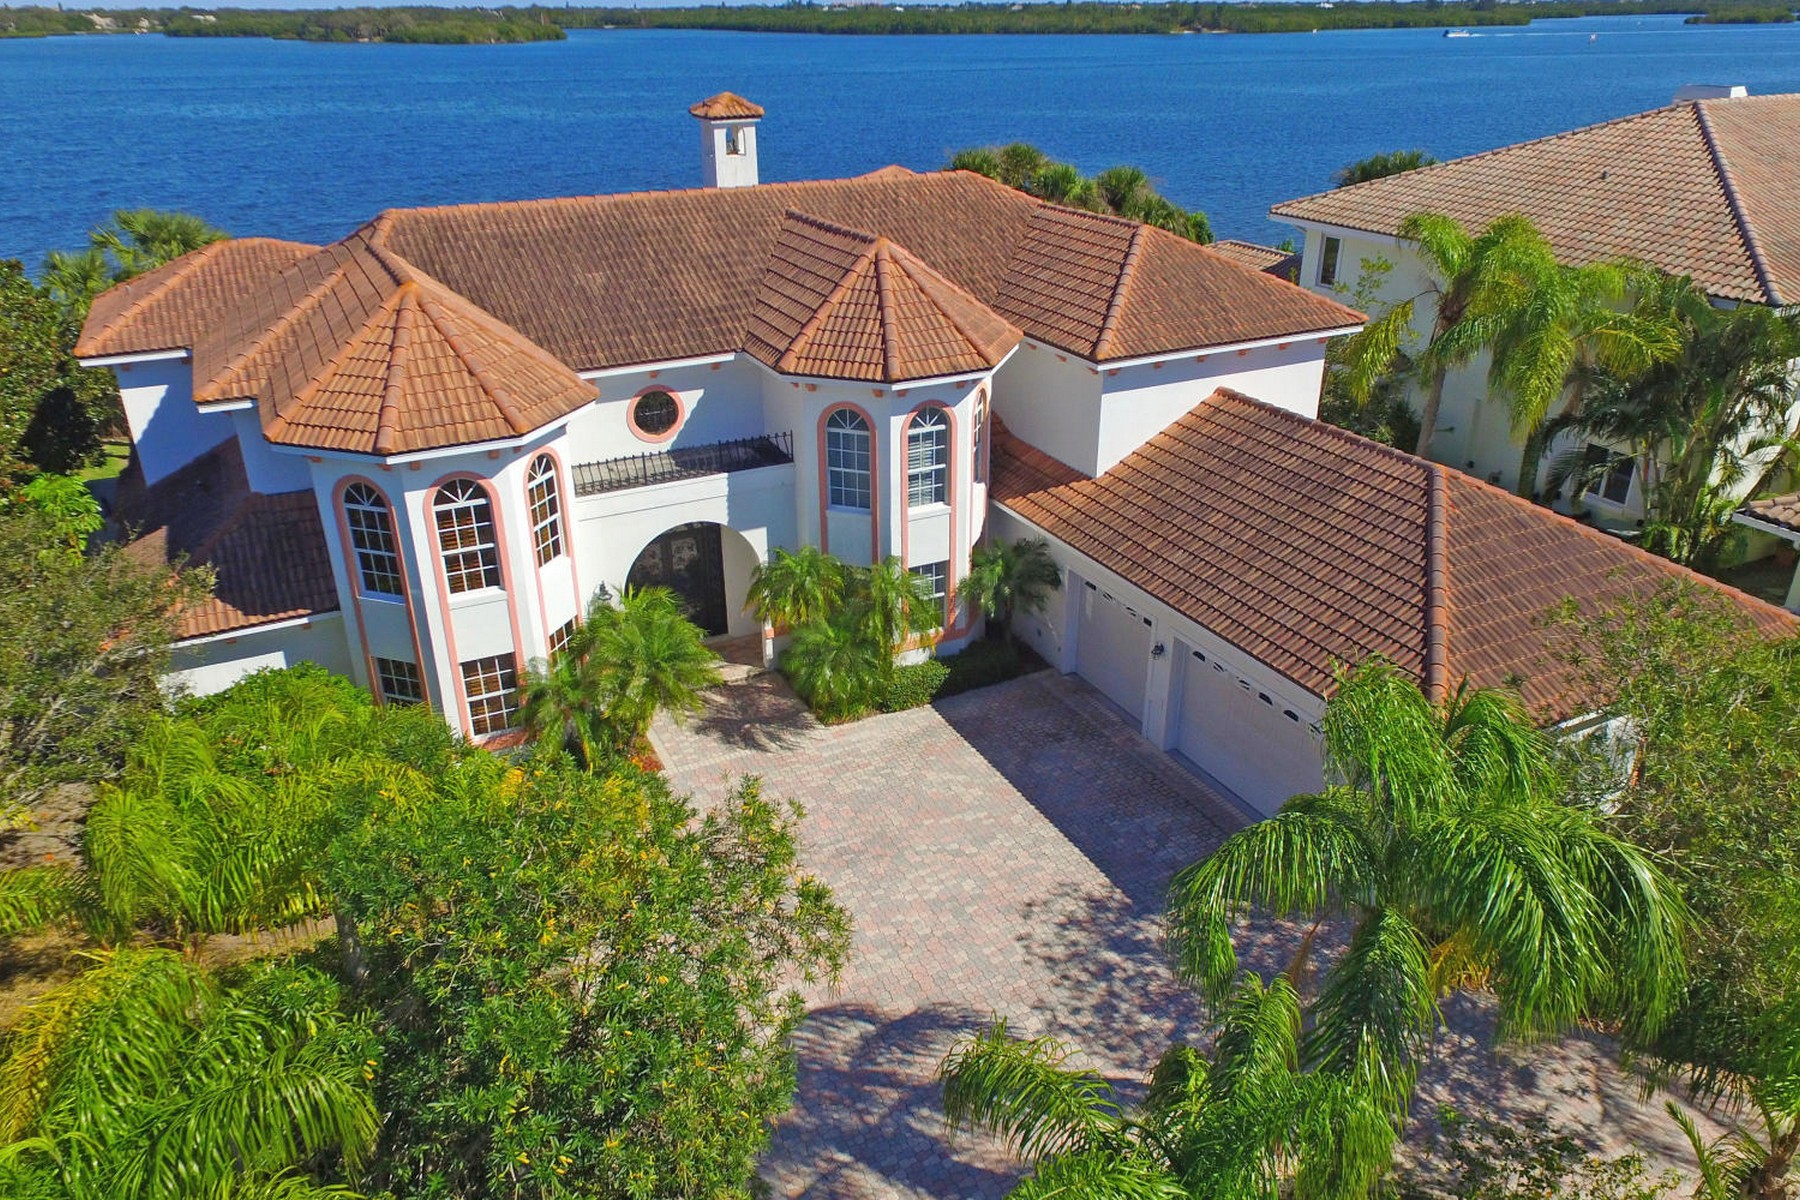 Single Family Homes für Verkauf beim Magnificent Riverfront Estate with 6,464 Square Feet 5210 Saint Andrews Island Dr Vero Beach, Florida 32967 Vereinigte Staaten